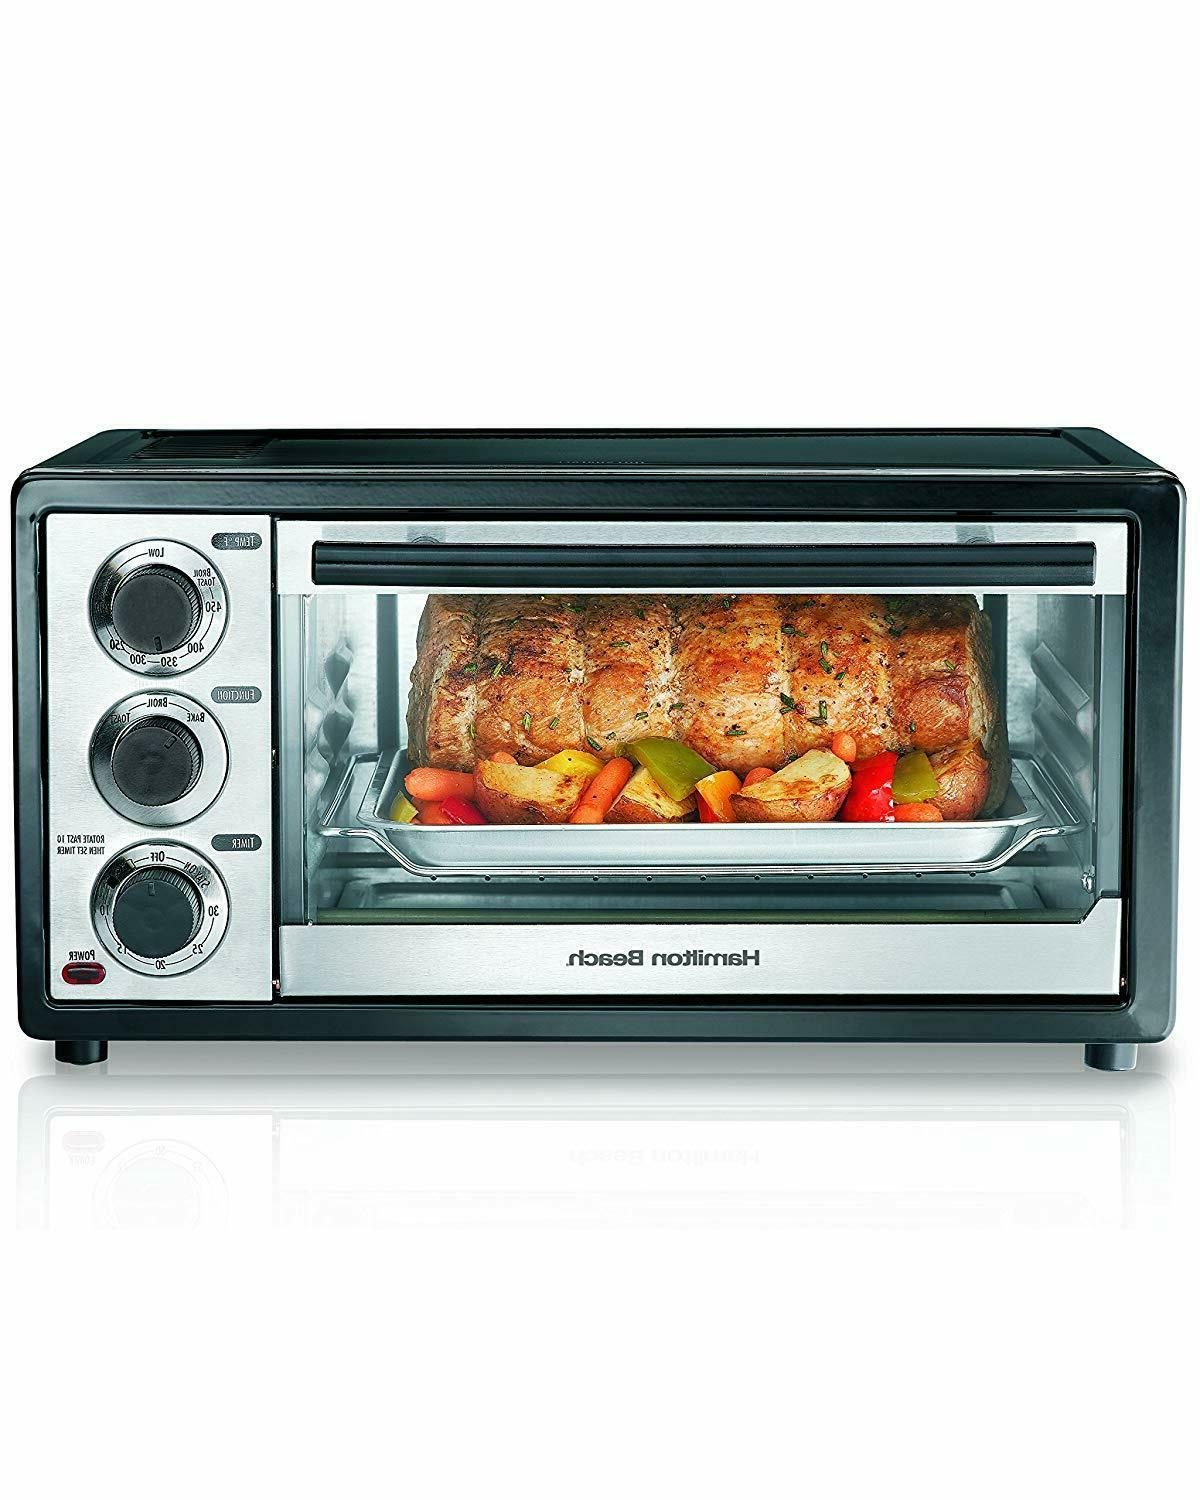 convection toaster oven 6 slice brushed stainless